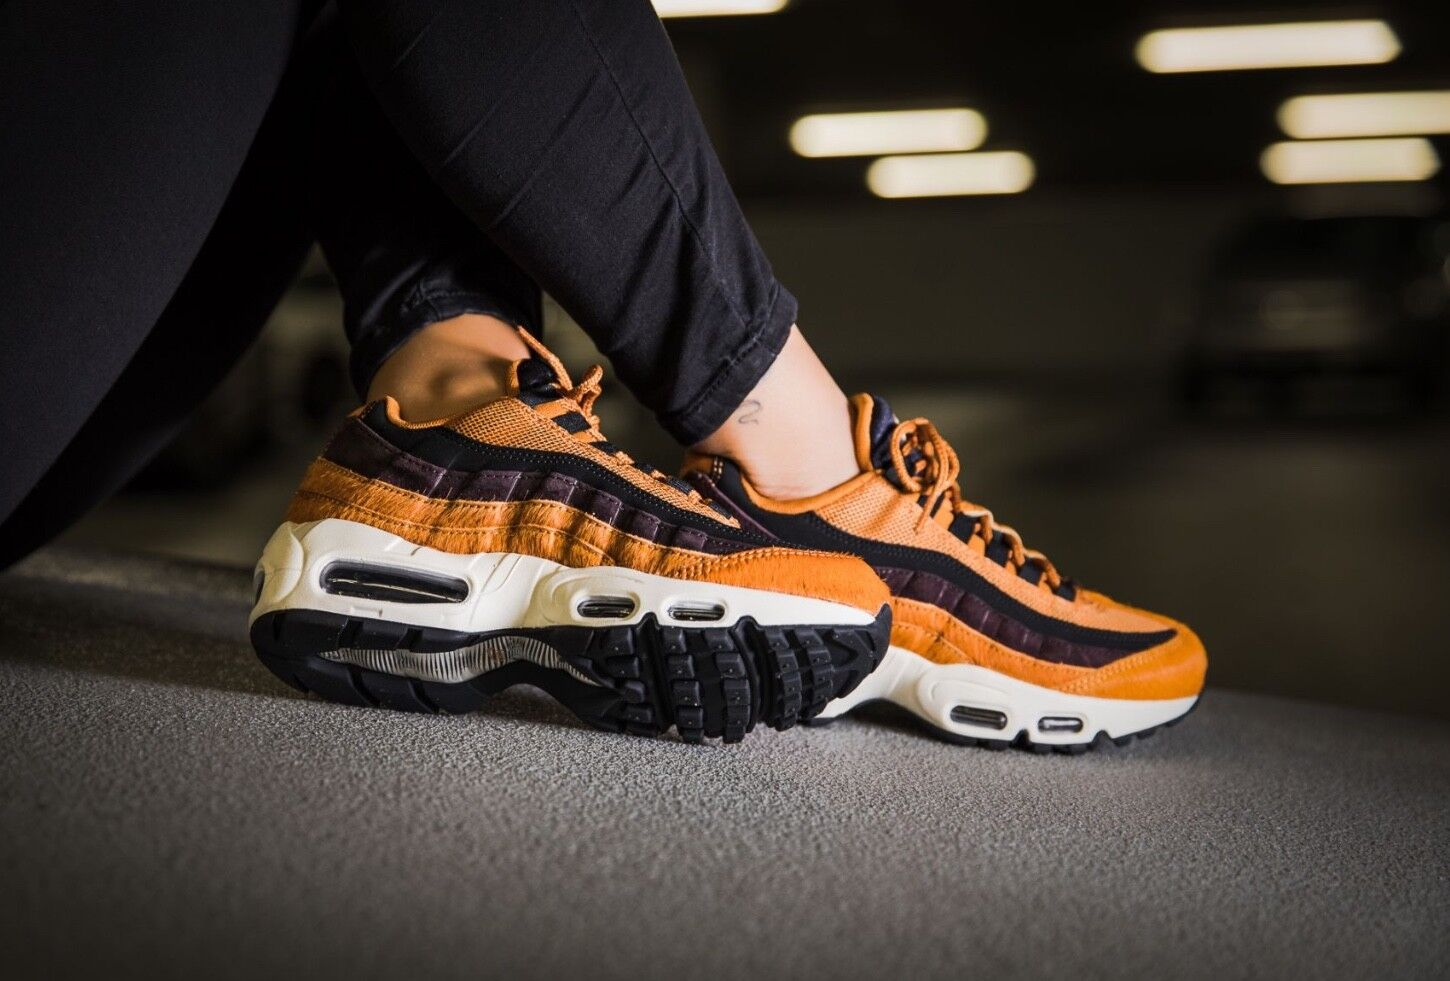 Nike Air Max 95 LX Trainer AA1103-200 UK4 EU37.5 US6.5 BNIB no lid